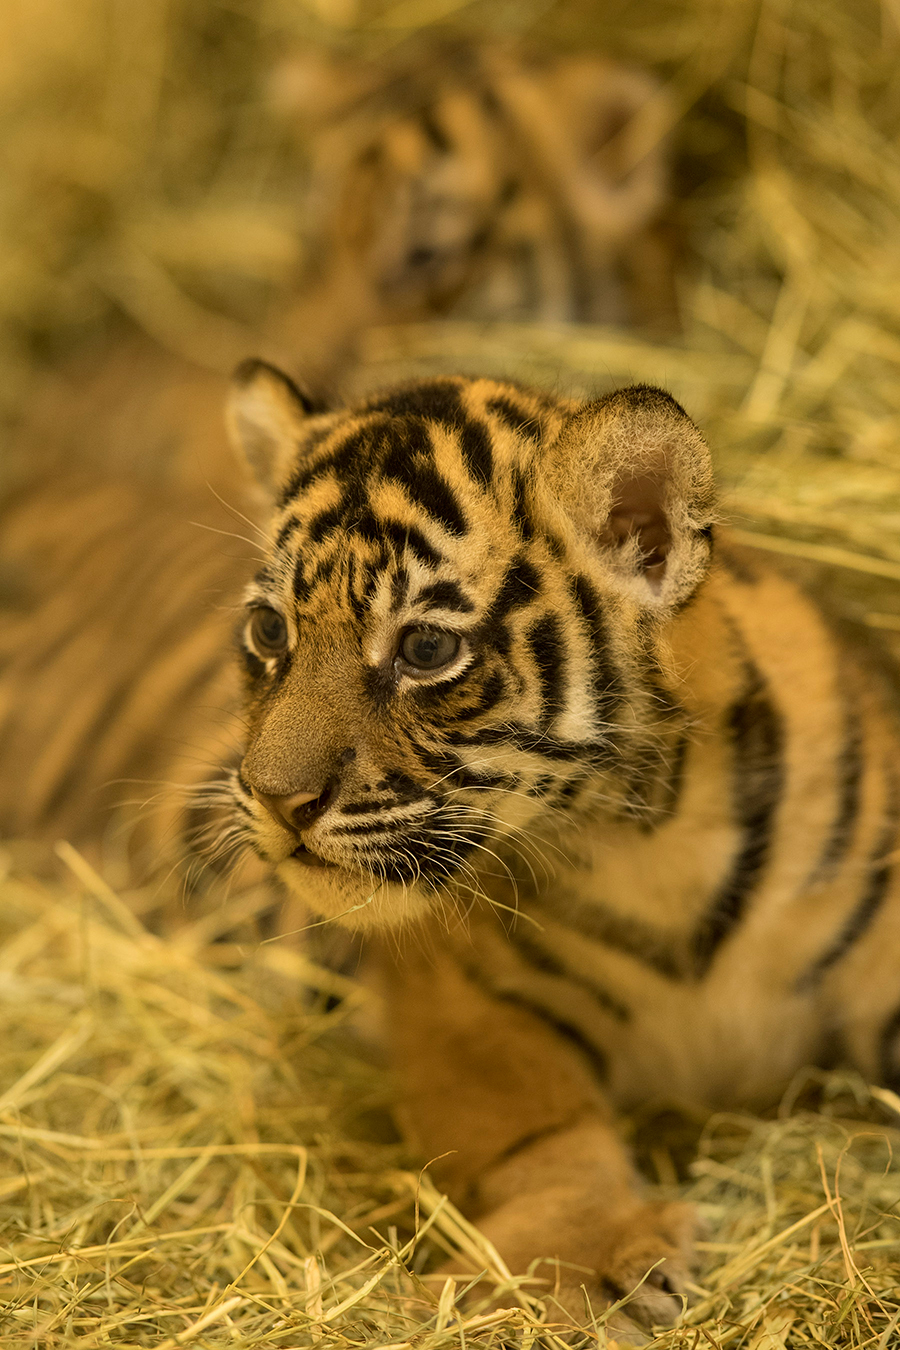 One of Sohni's beautiful cubs